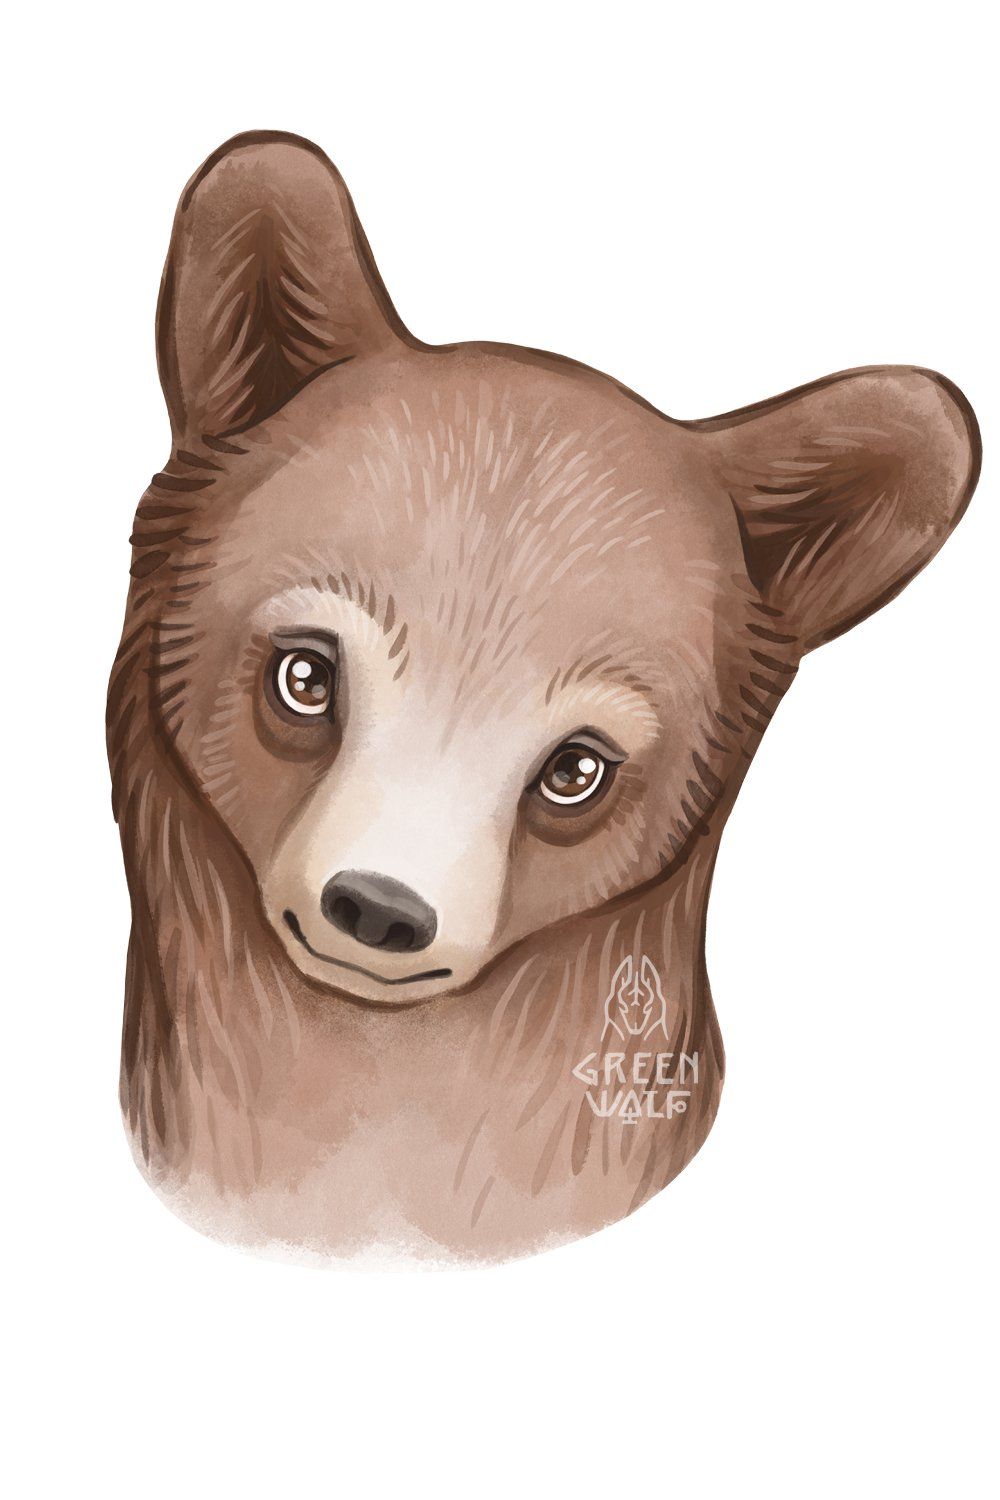 Grizzly bear watercolor illustration Woodland nursery decor example image 7